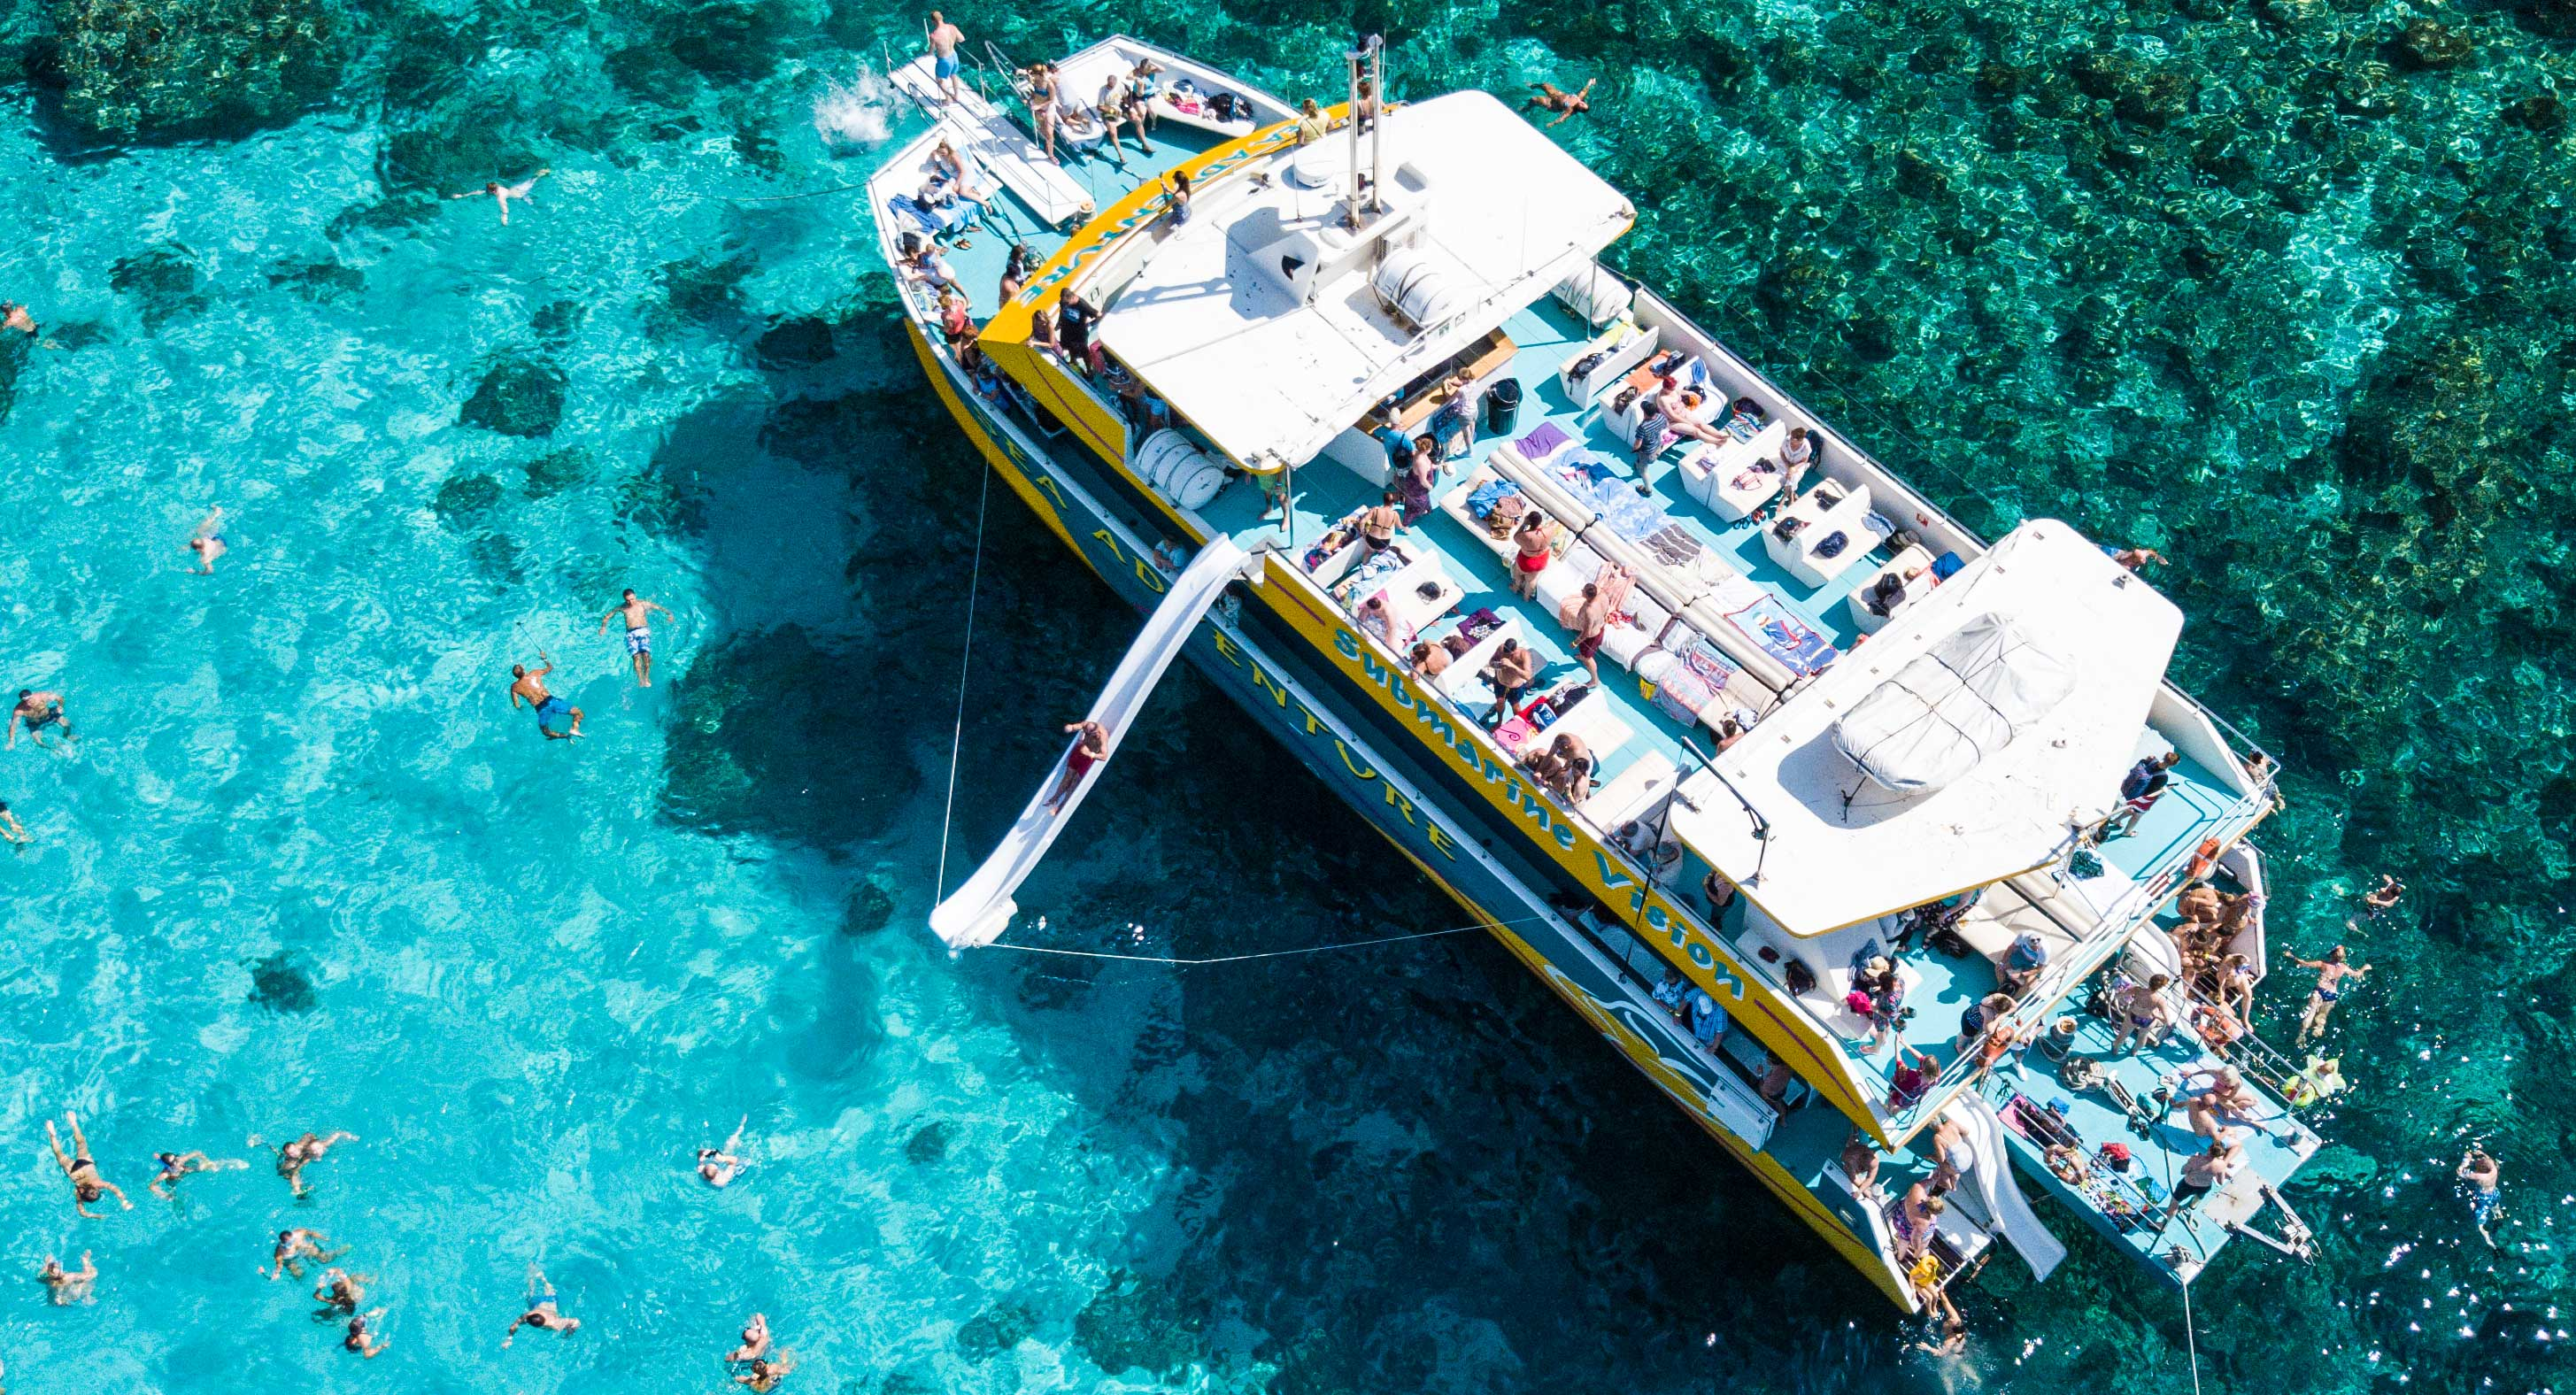 Boat Trips in Malta - Boat Trips by Sea Adventure Excursions